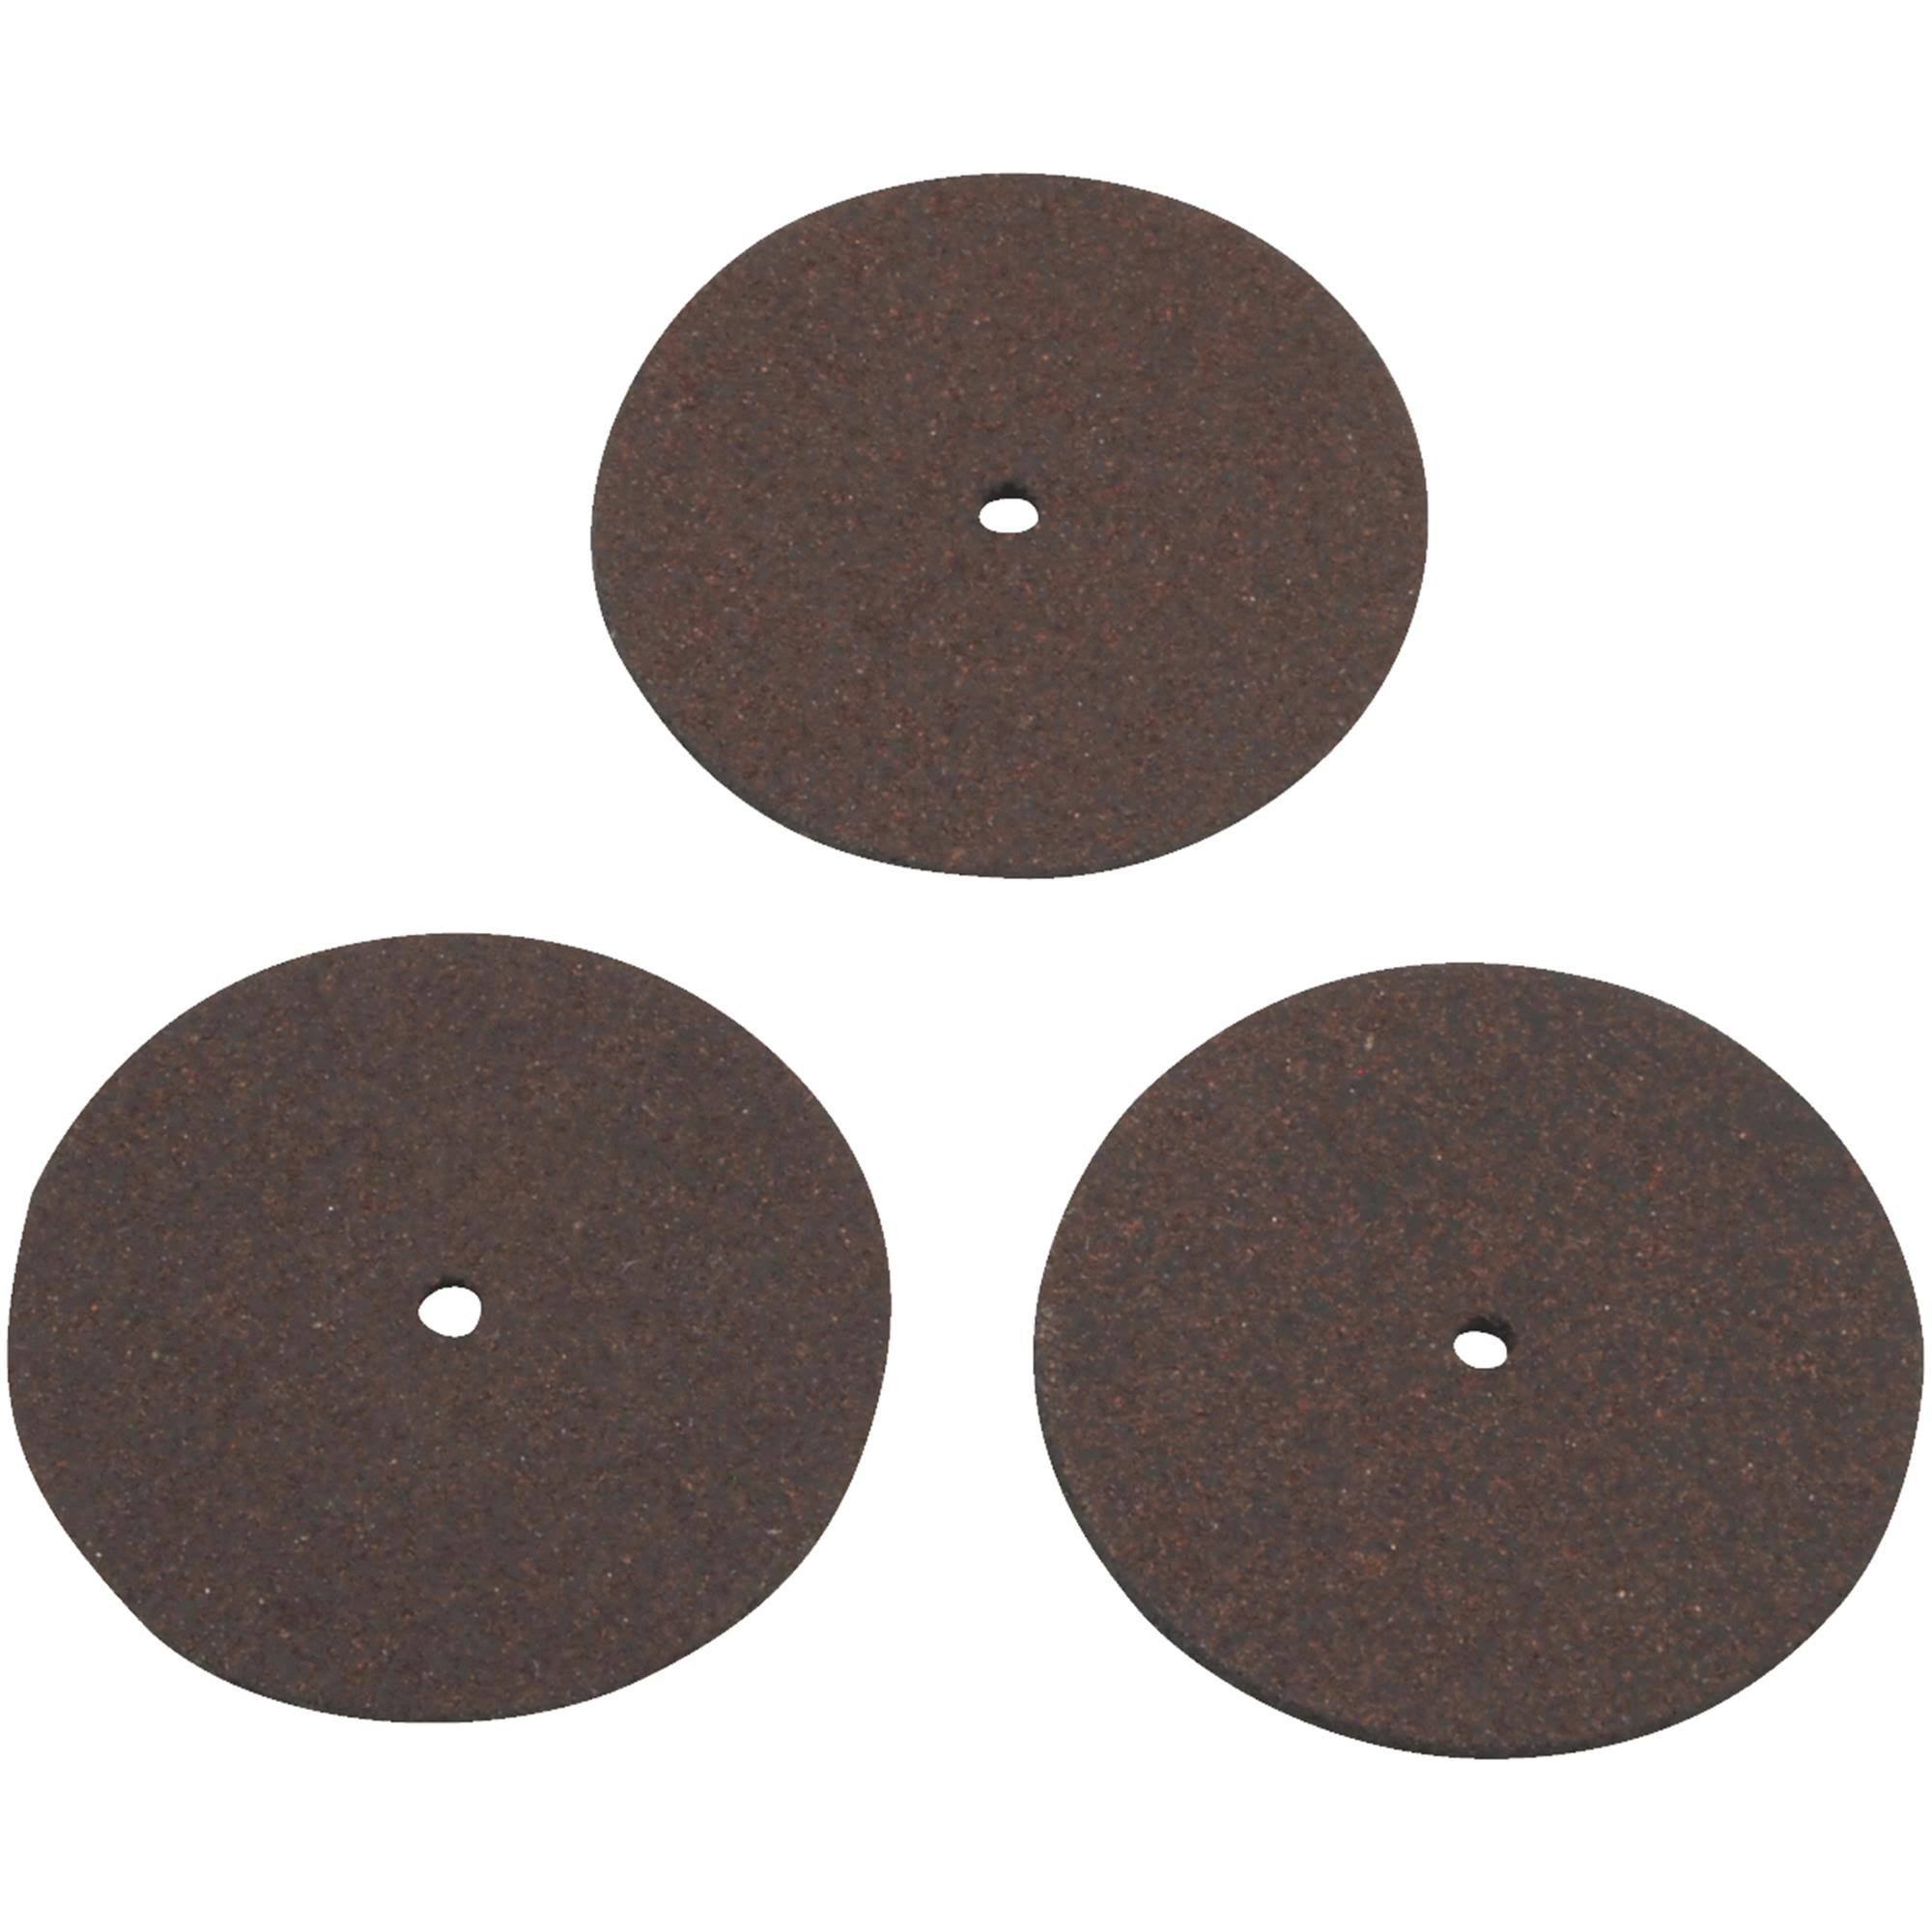 Forney Replacement Cut Off Wheels Set - 3pcs Set, 1 1/4""